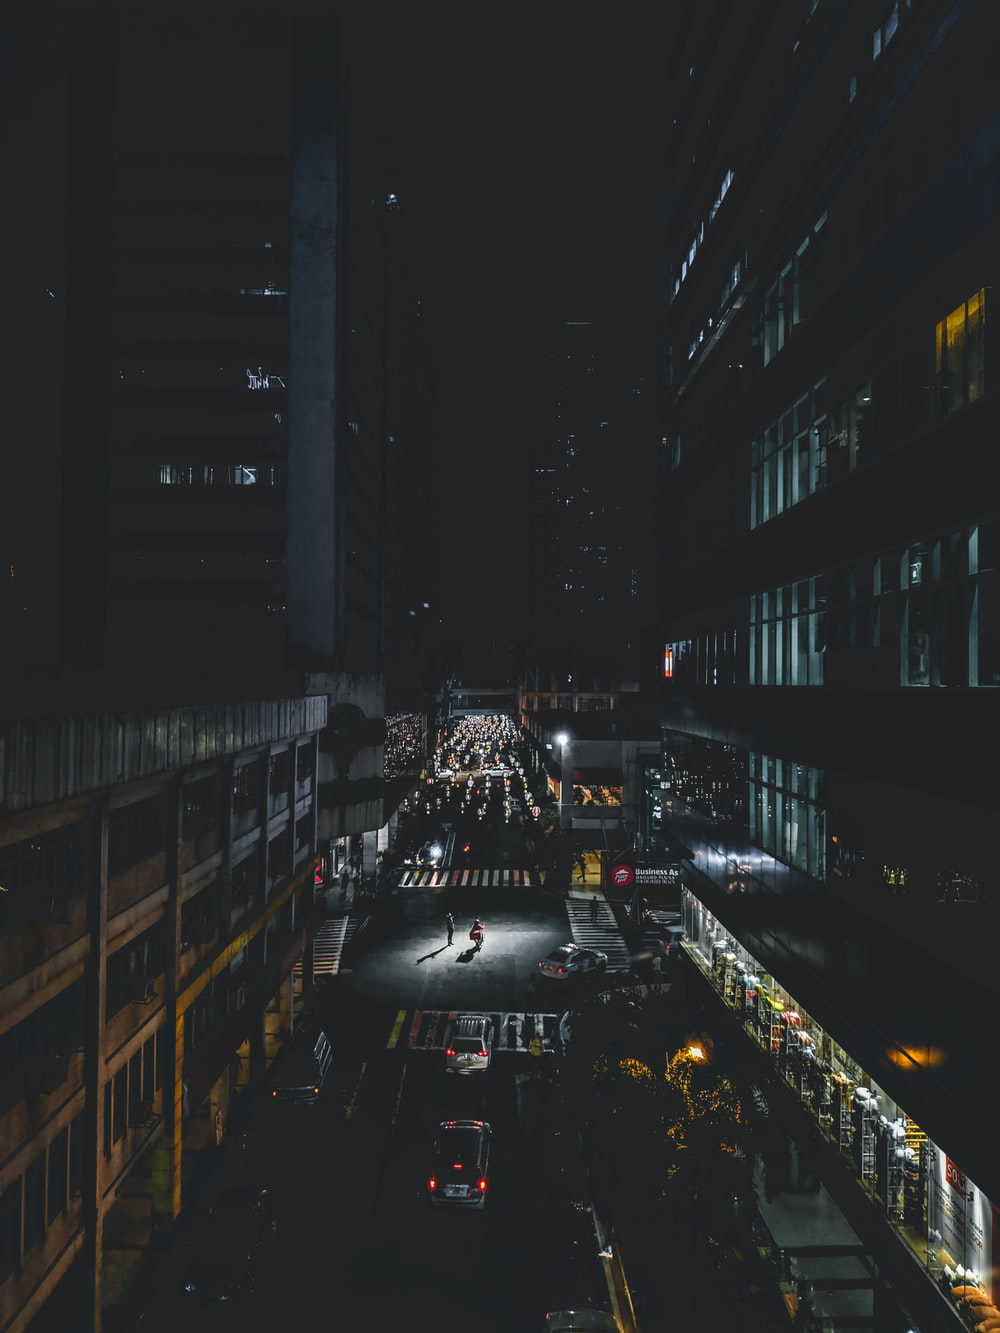 cars on road in between high rise buildings during night time